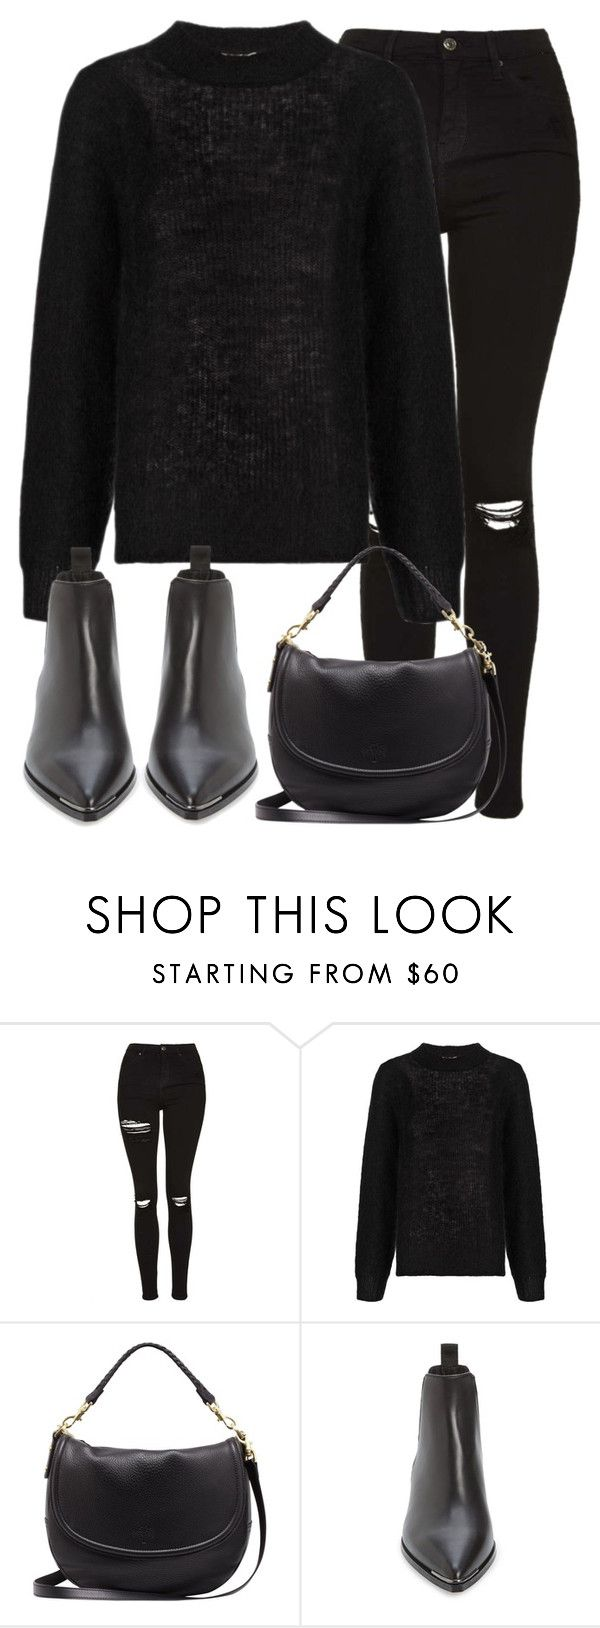 """""""Untitled #2815"""" by elenaday ❤ liked on Polyvore featuring Topshop, Whistles, Mulberry and Acne Studios"""